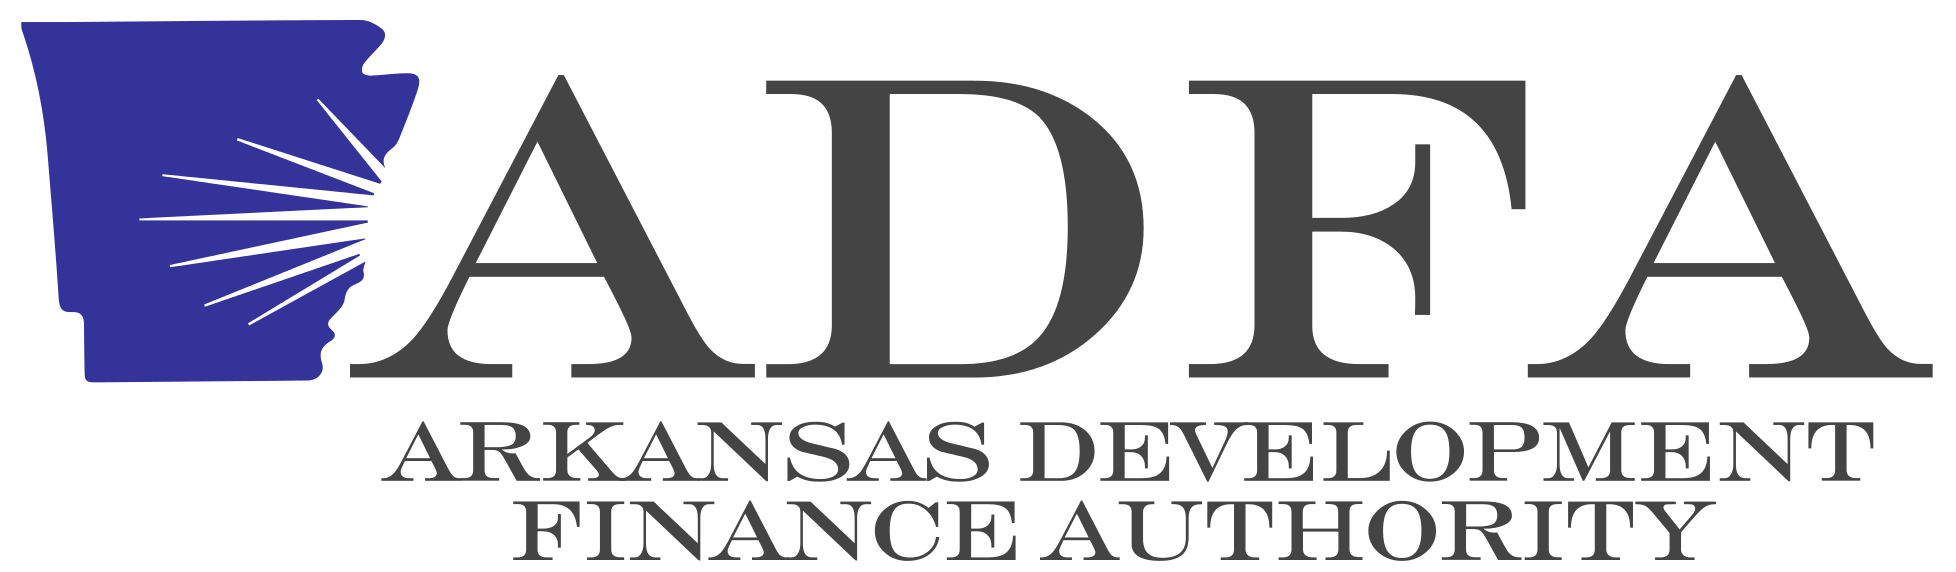 Arkansas Development Finance Authority - Official Seal or Logo